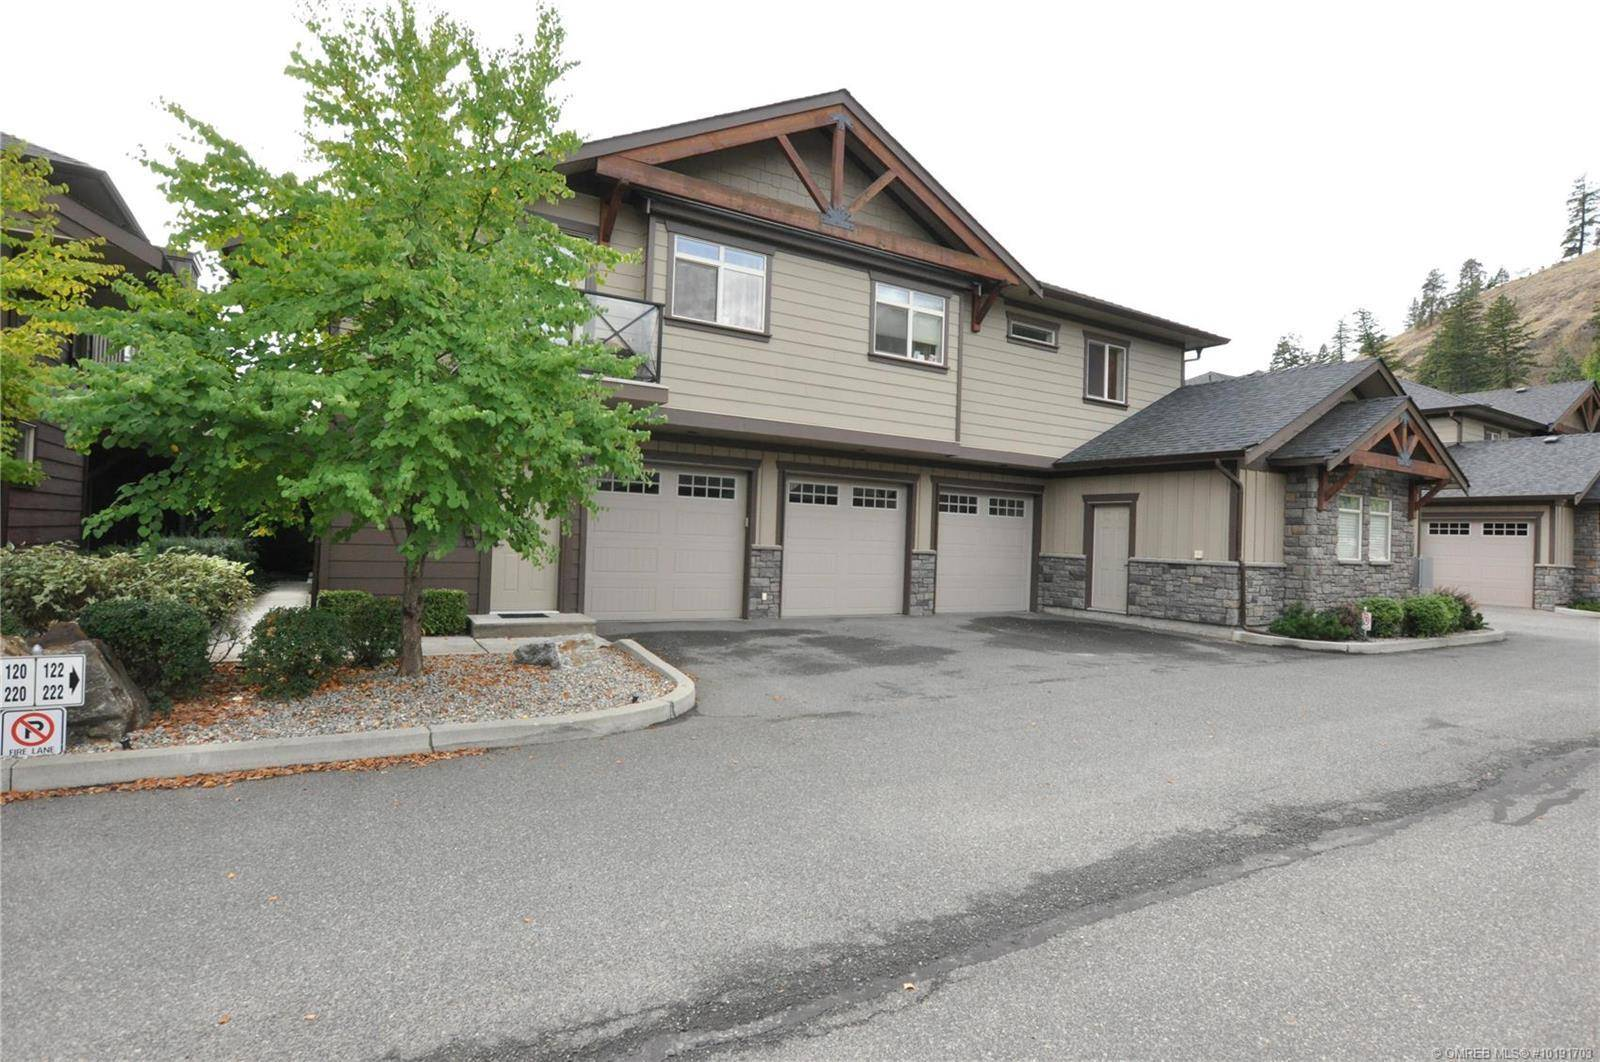 Townhouse for sale at 511 Yates Rd Unit 122 Kelowna British Columbia - MLS: 10191703